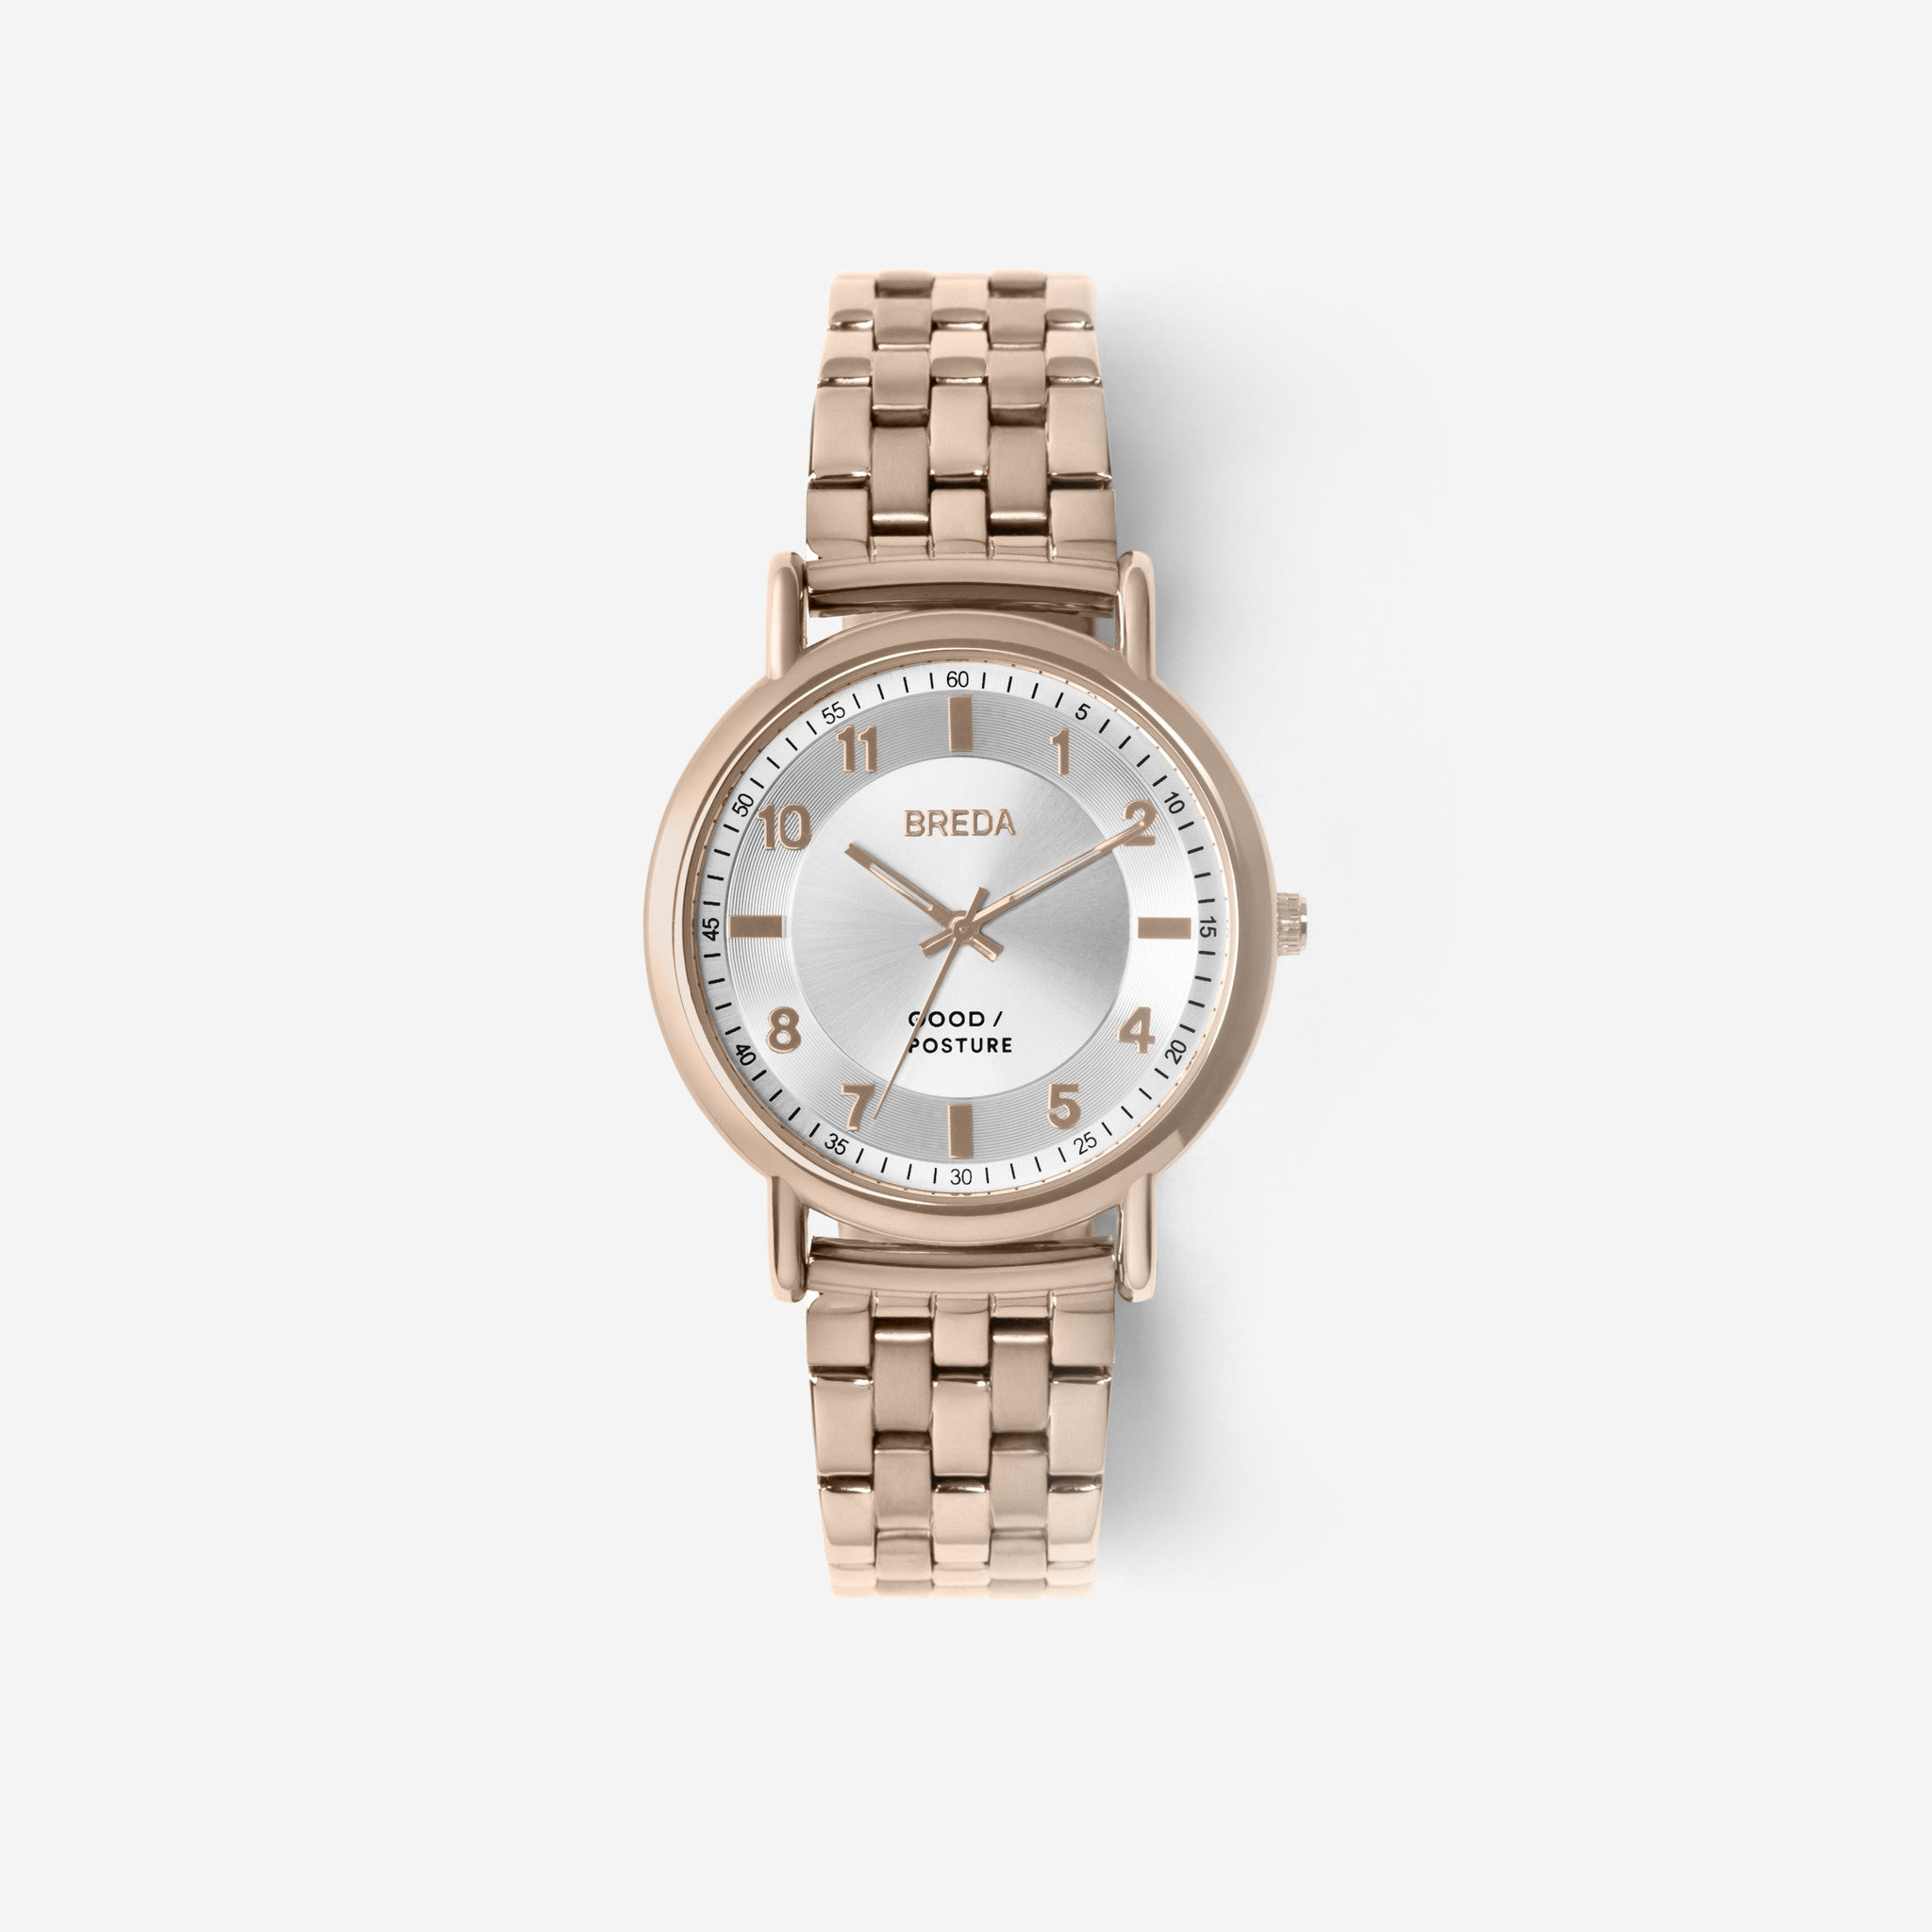 //cdn.shopify.com/s/files/1/0879/6650/products/BREDA-Good-Posture-Theophilus-Martins-Blossom-5017c-Rose-Gold-Watch-Front_1024x1024.jpg?v=1522791403